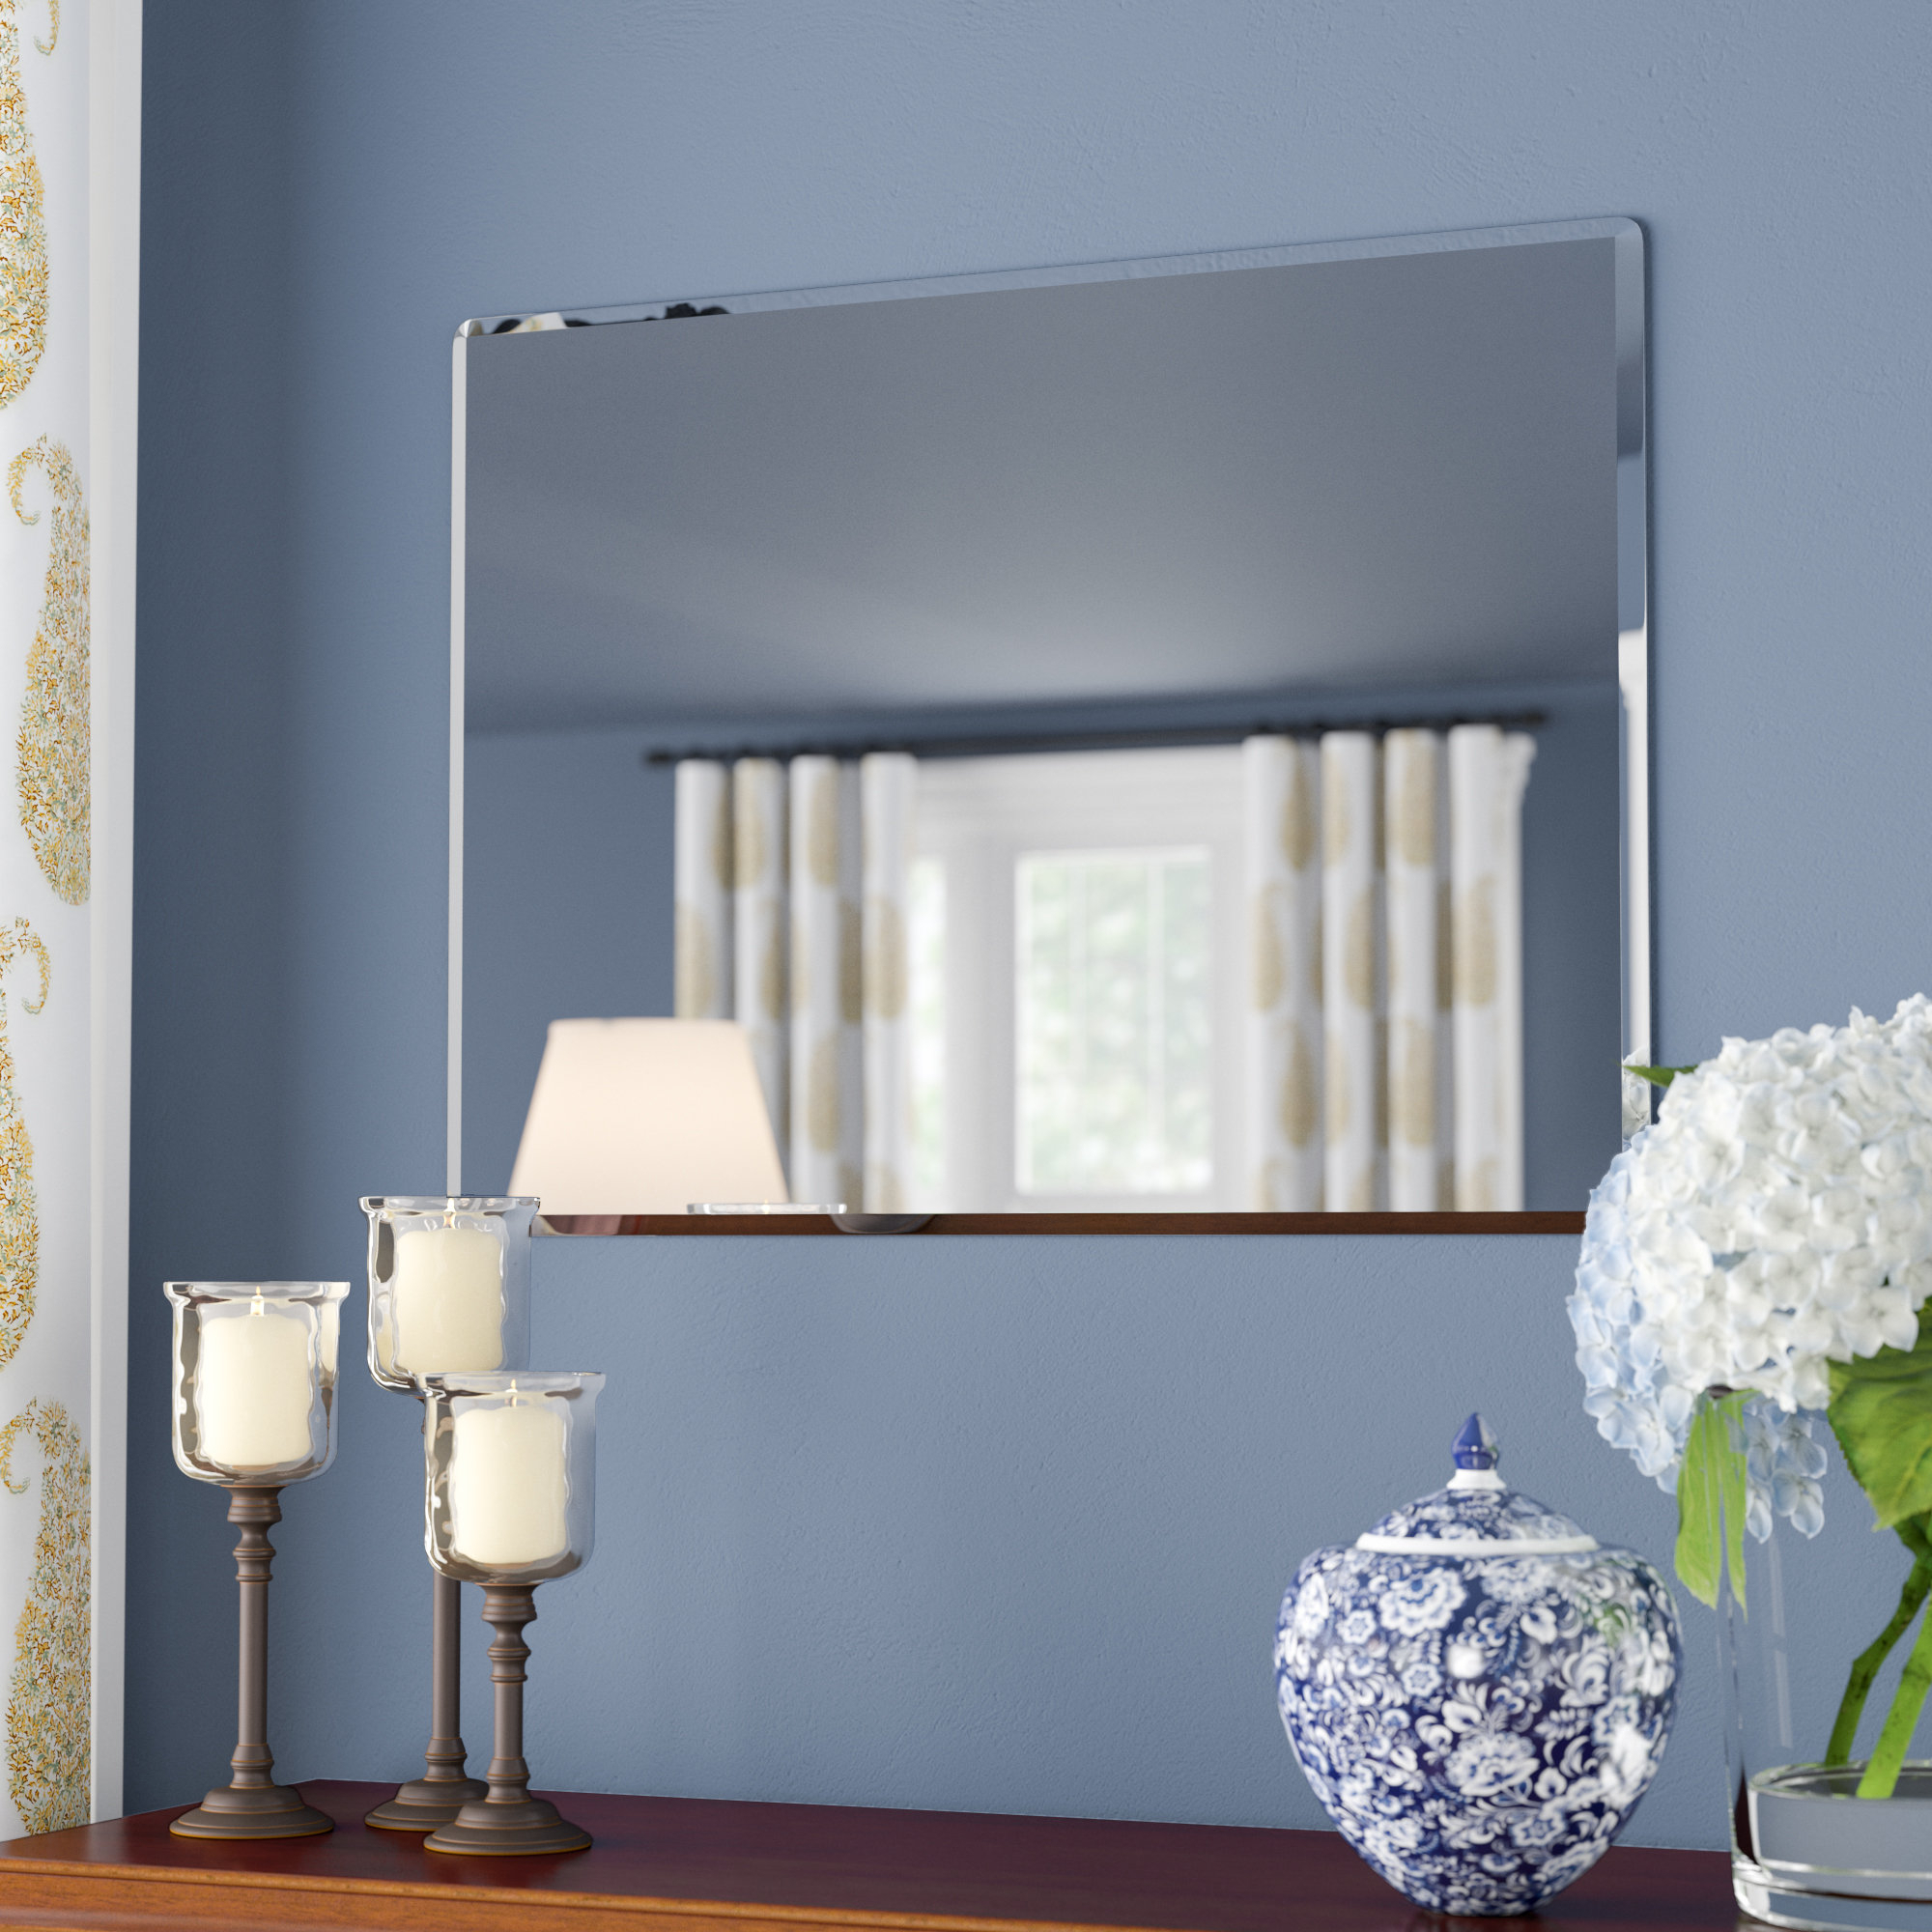 Etched Frameless Wall Mirror | Wayfair For Wallingford Large Frameless Wall Mirrors (View 12 of 20)